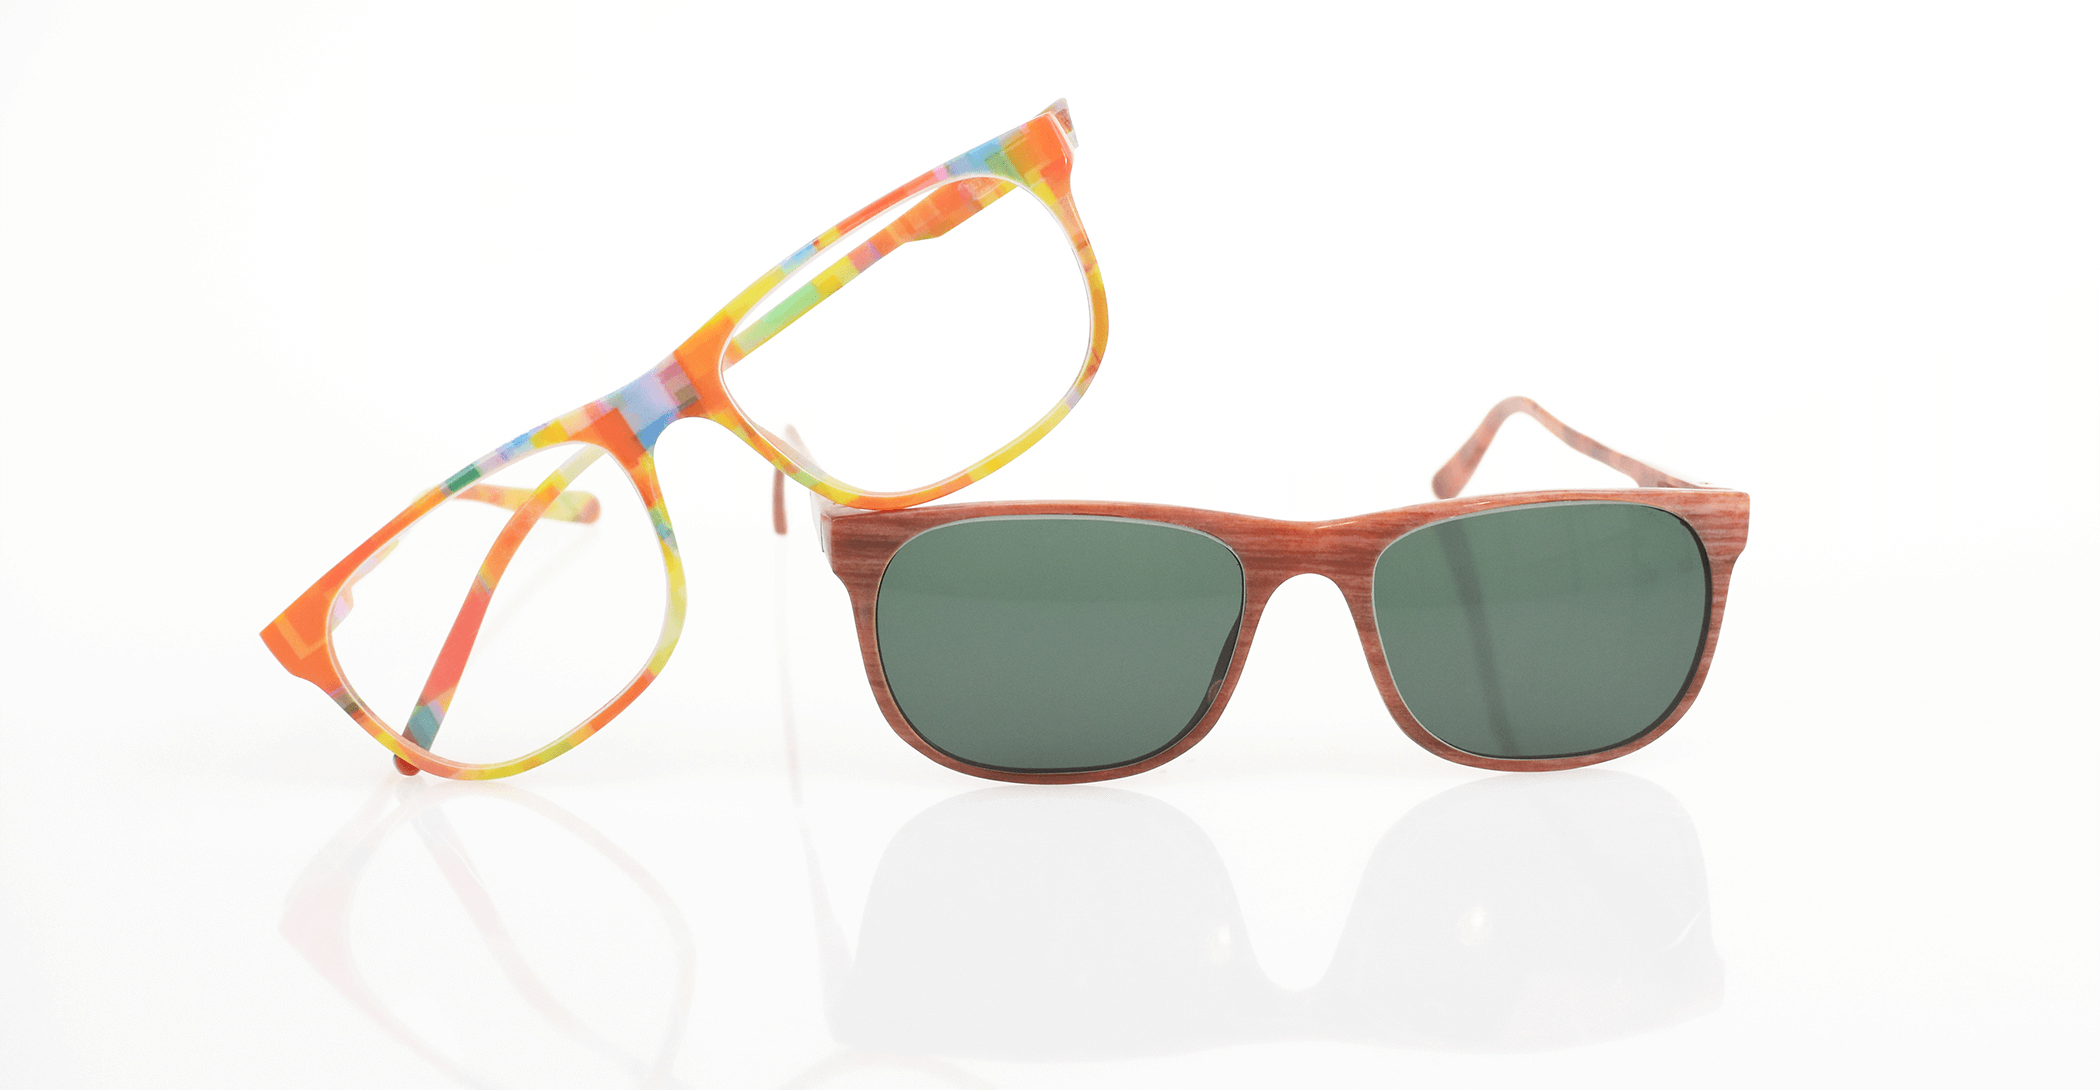 f2d1b269cad View various eyewear prototypes 3D printed in various color combinations of  VeroFlex on the Stratasys J750.